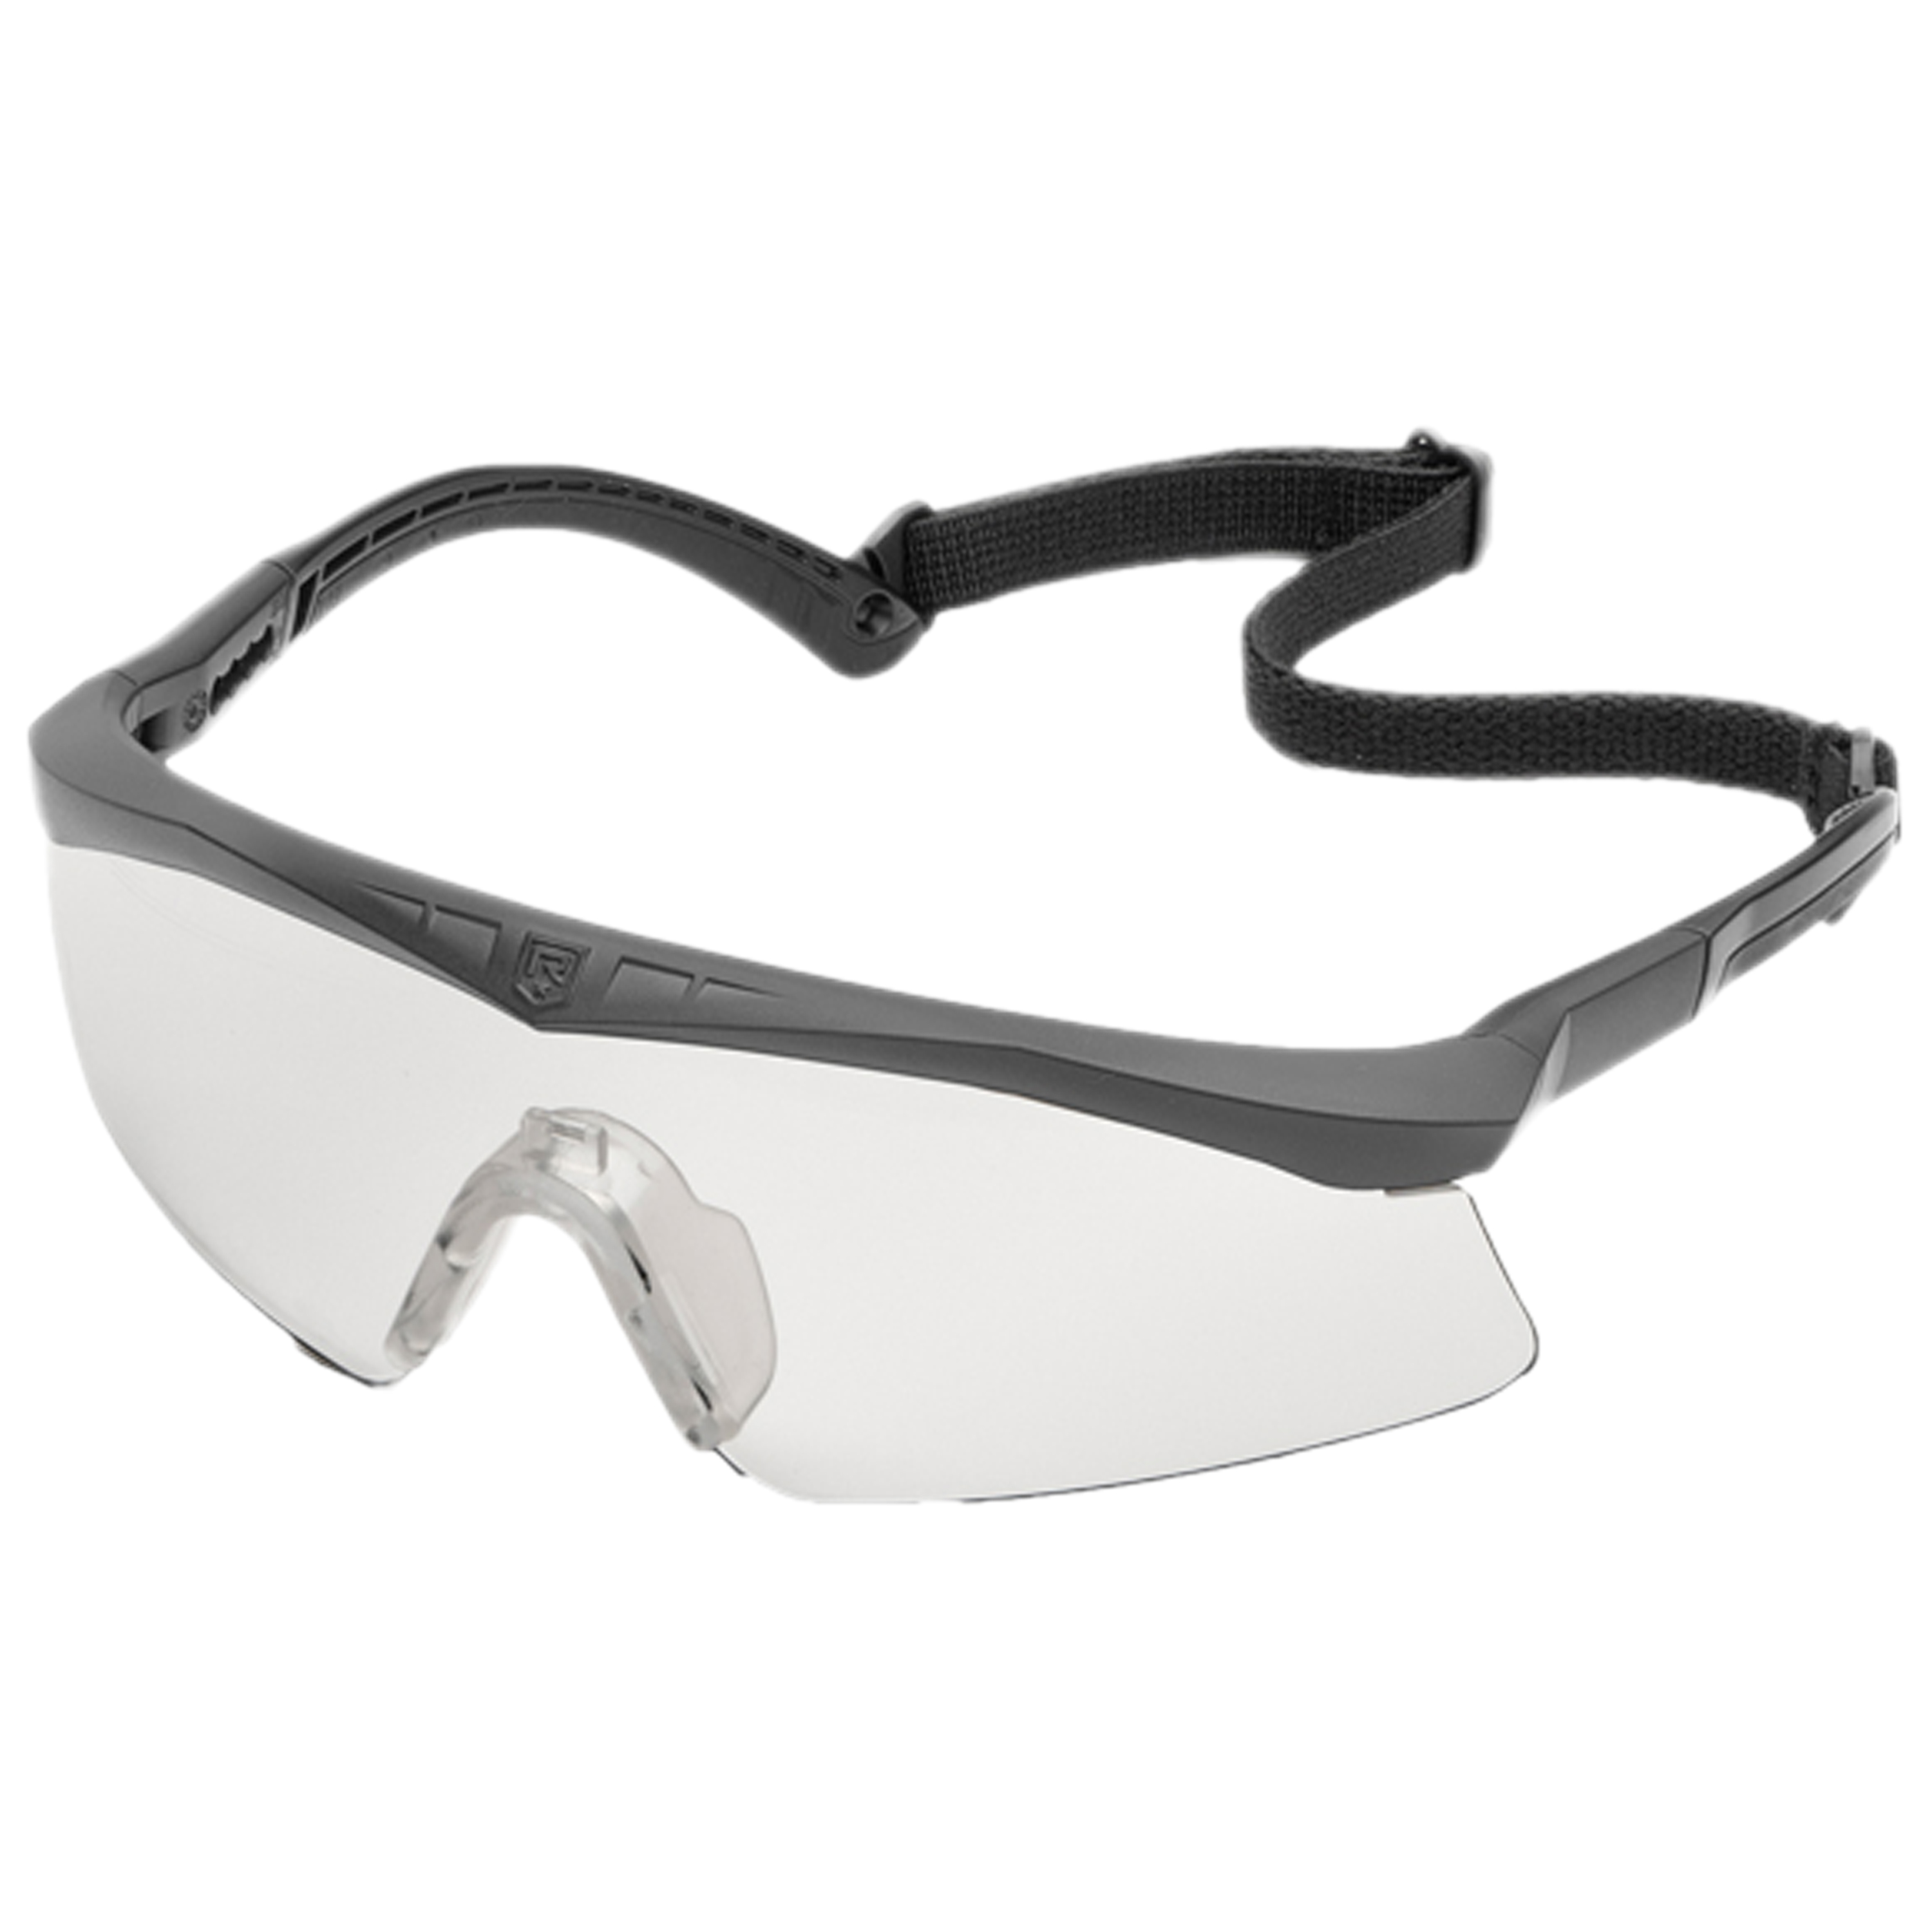 Revision Sawfly Glasses Basic clear